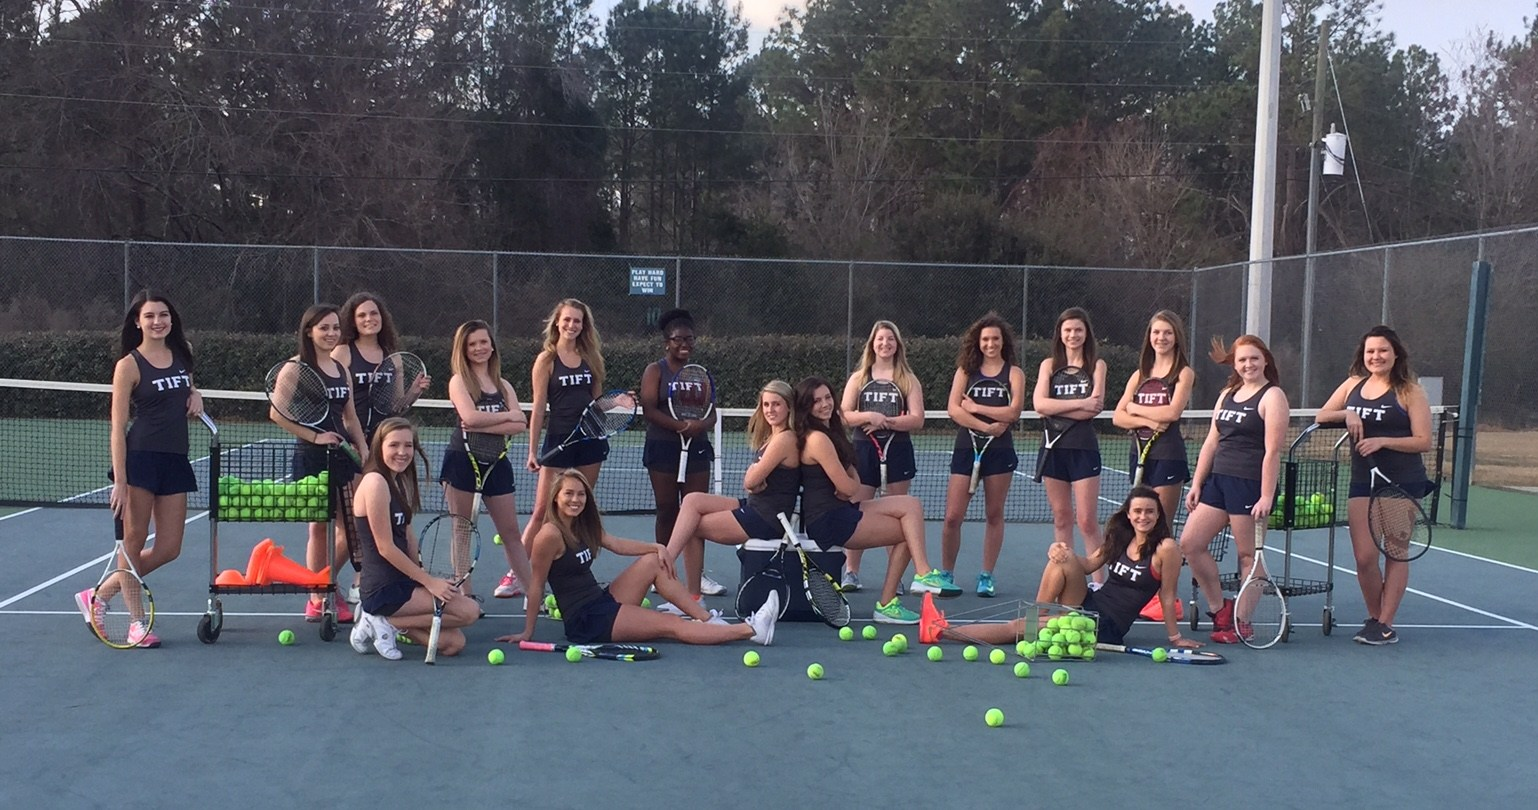 2016 girls tennis team